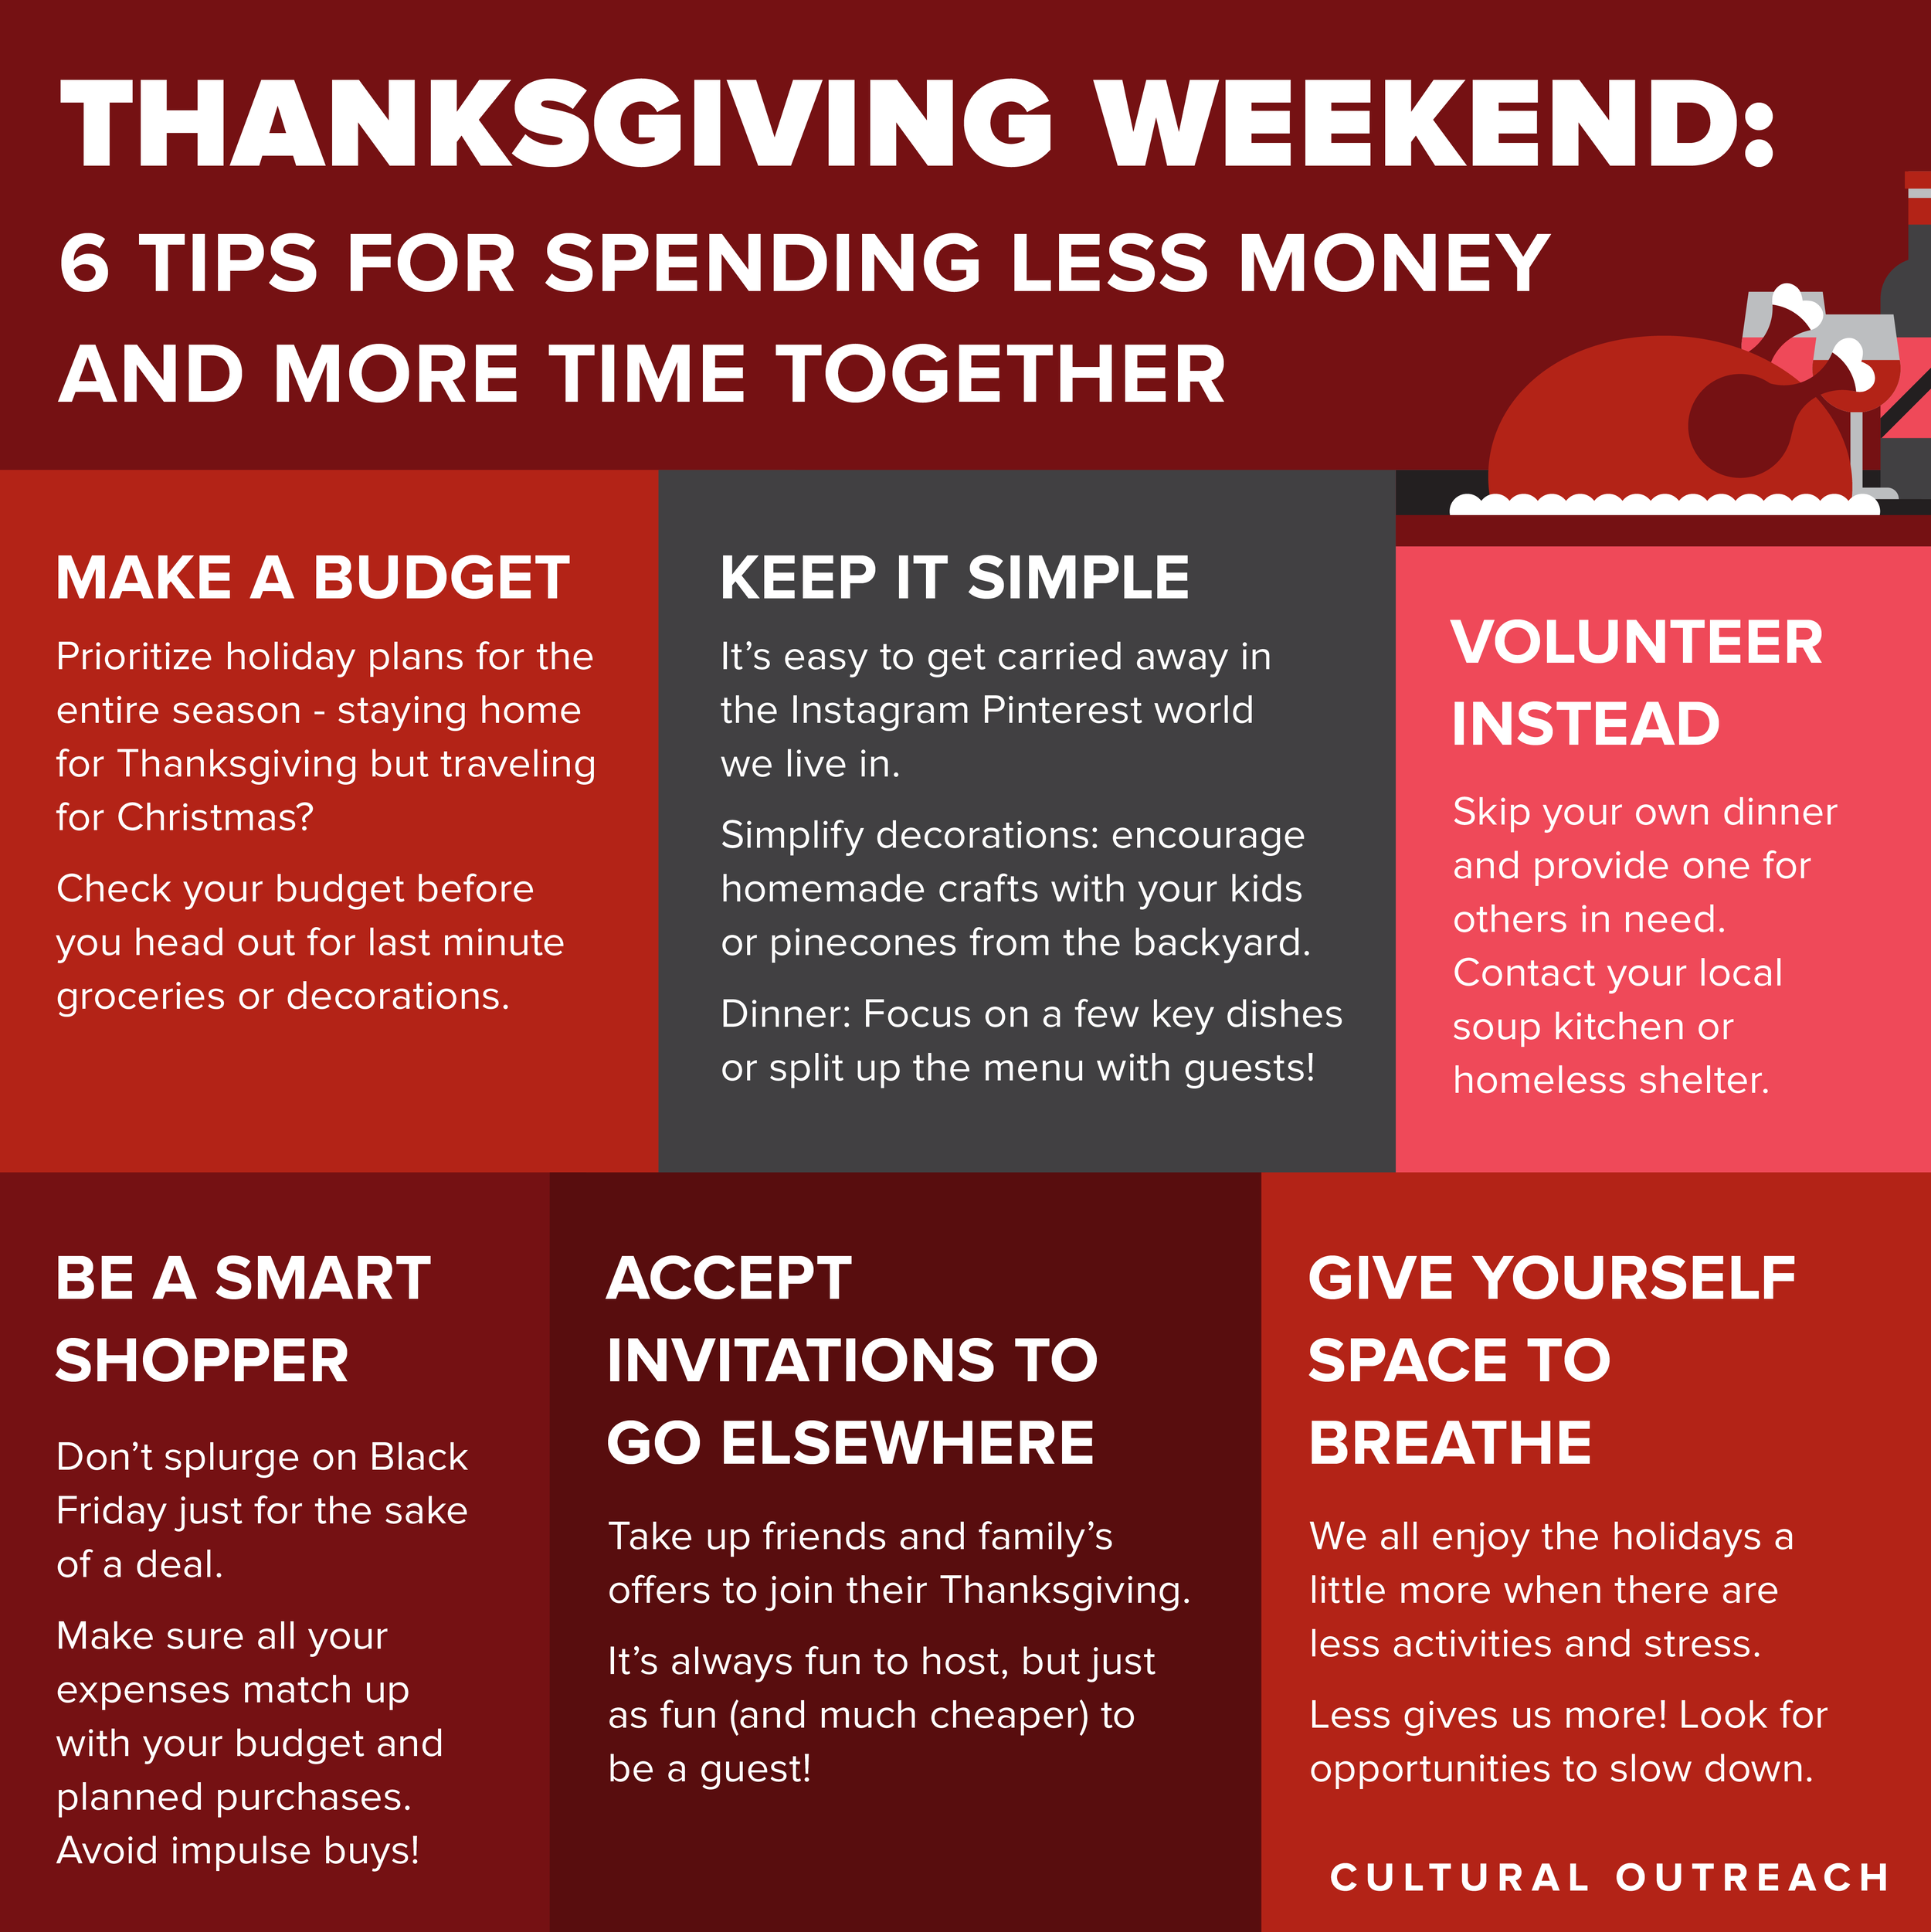 COS286_Thanksgiving_Infographic_R1V1_10-26-19.png